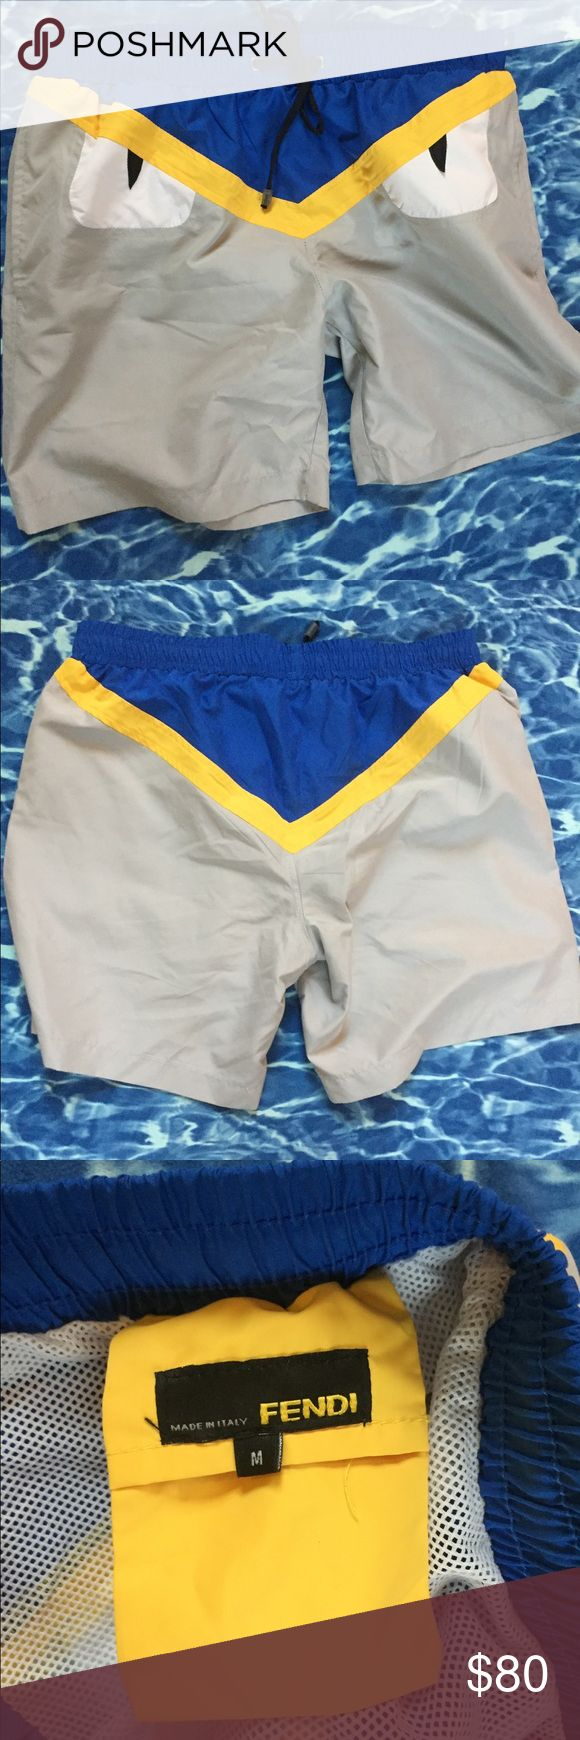 Men's Fendi Monster Swim Suit Men's Fake Fendi Monster Swim Suit. This Fendi swim suit is fake but fabulous! Quality is really great. Worn once and did not even go in the water lol. Seriously awesome men's bathing suit!!! Hard to find retail Fendi stores or even as a designer copy. Fendi Swim Swim Trunks